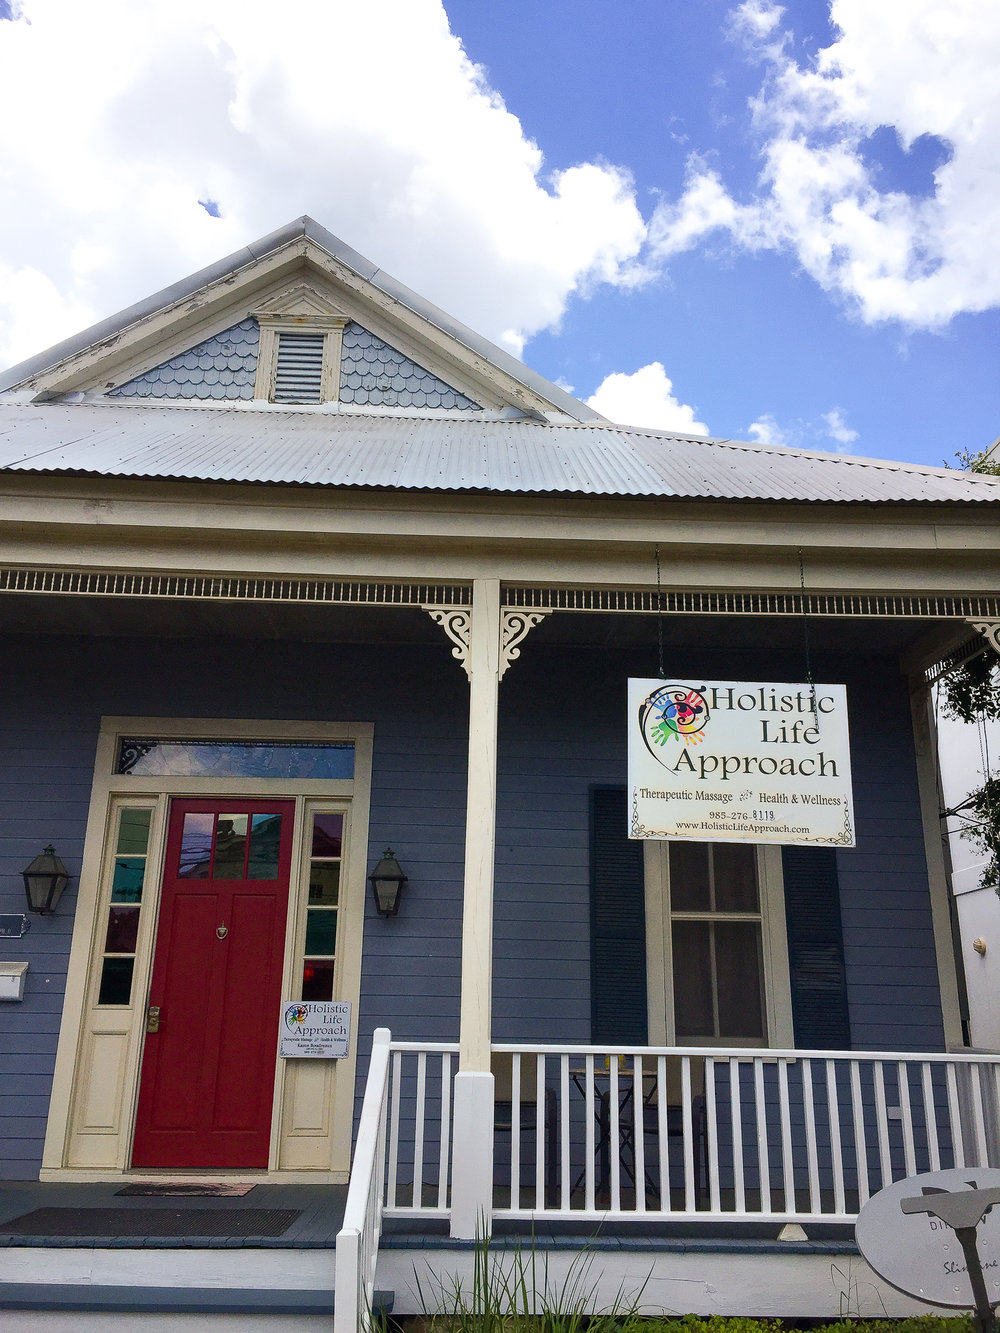 Holistic Life Approach, in downtown Covington